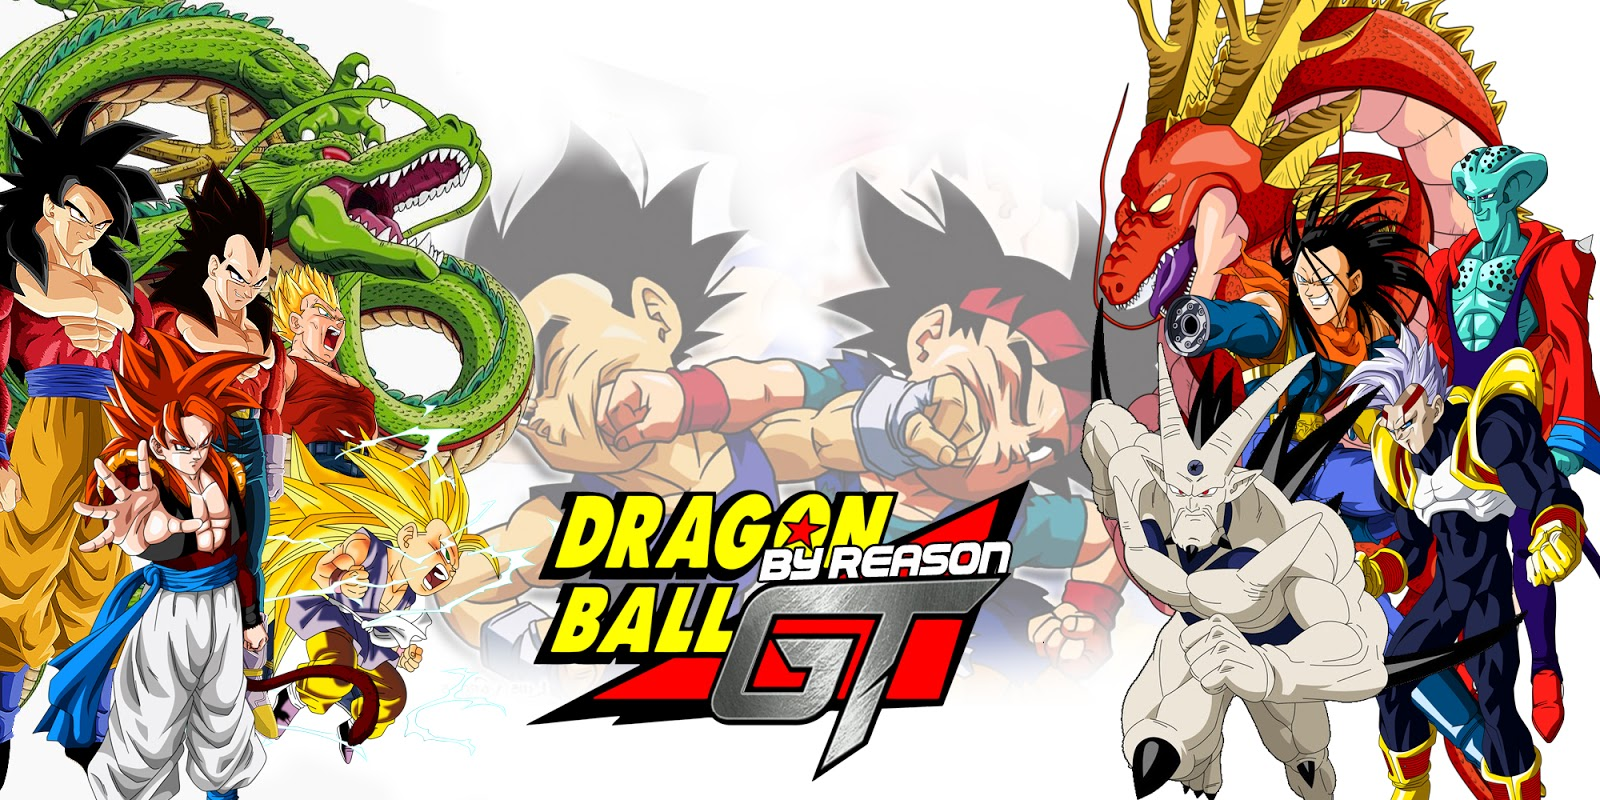 Dragon Ball Gt Dragon Ball Anime Manga